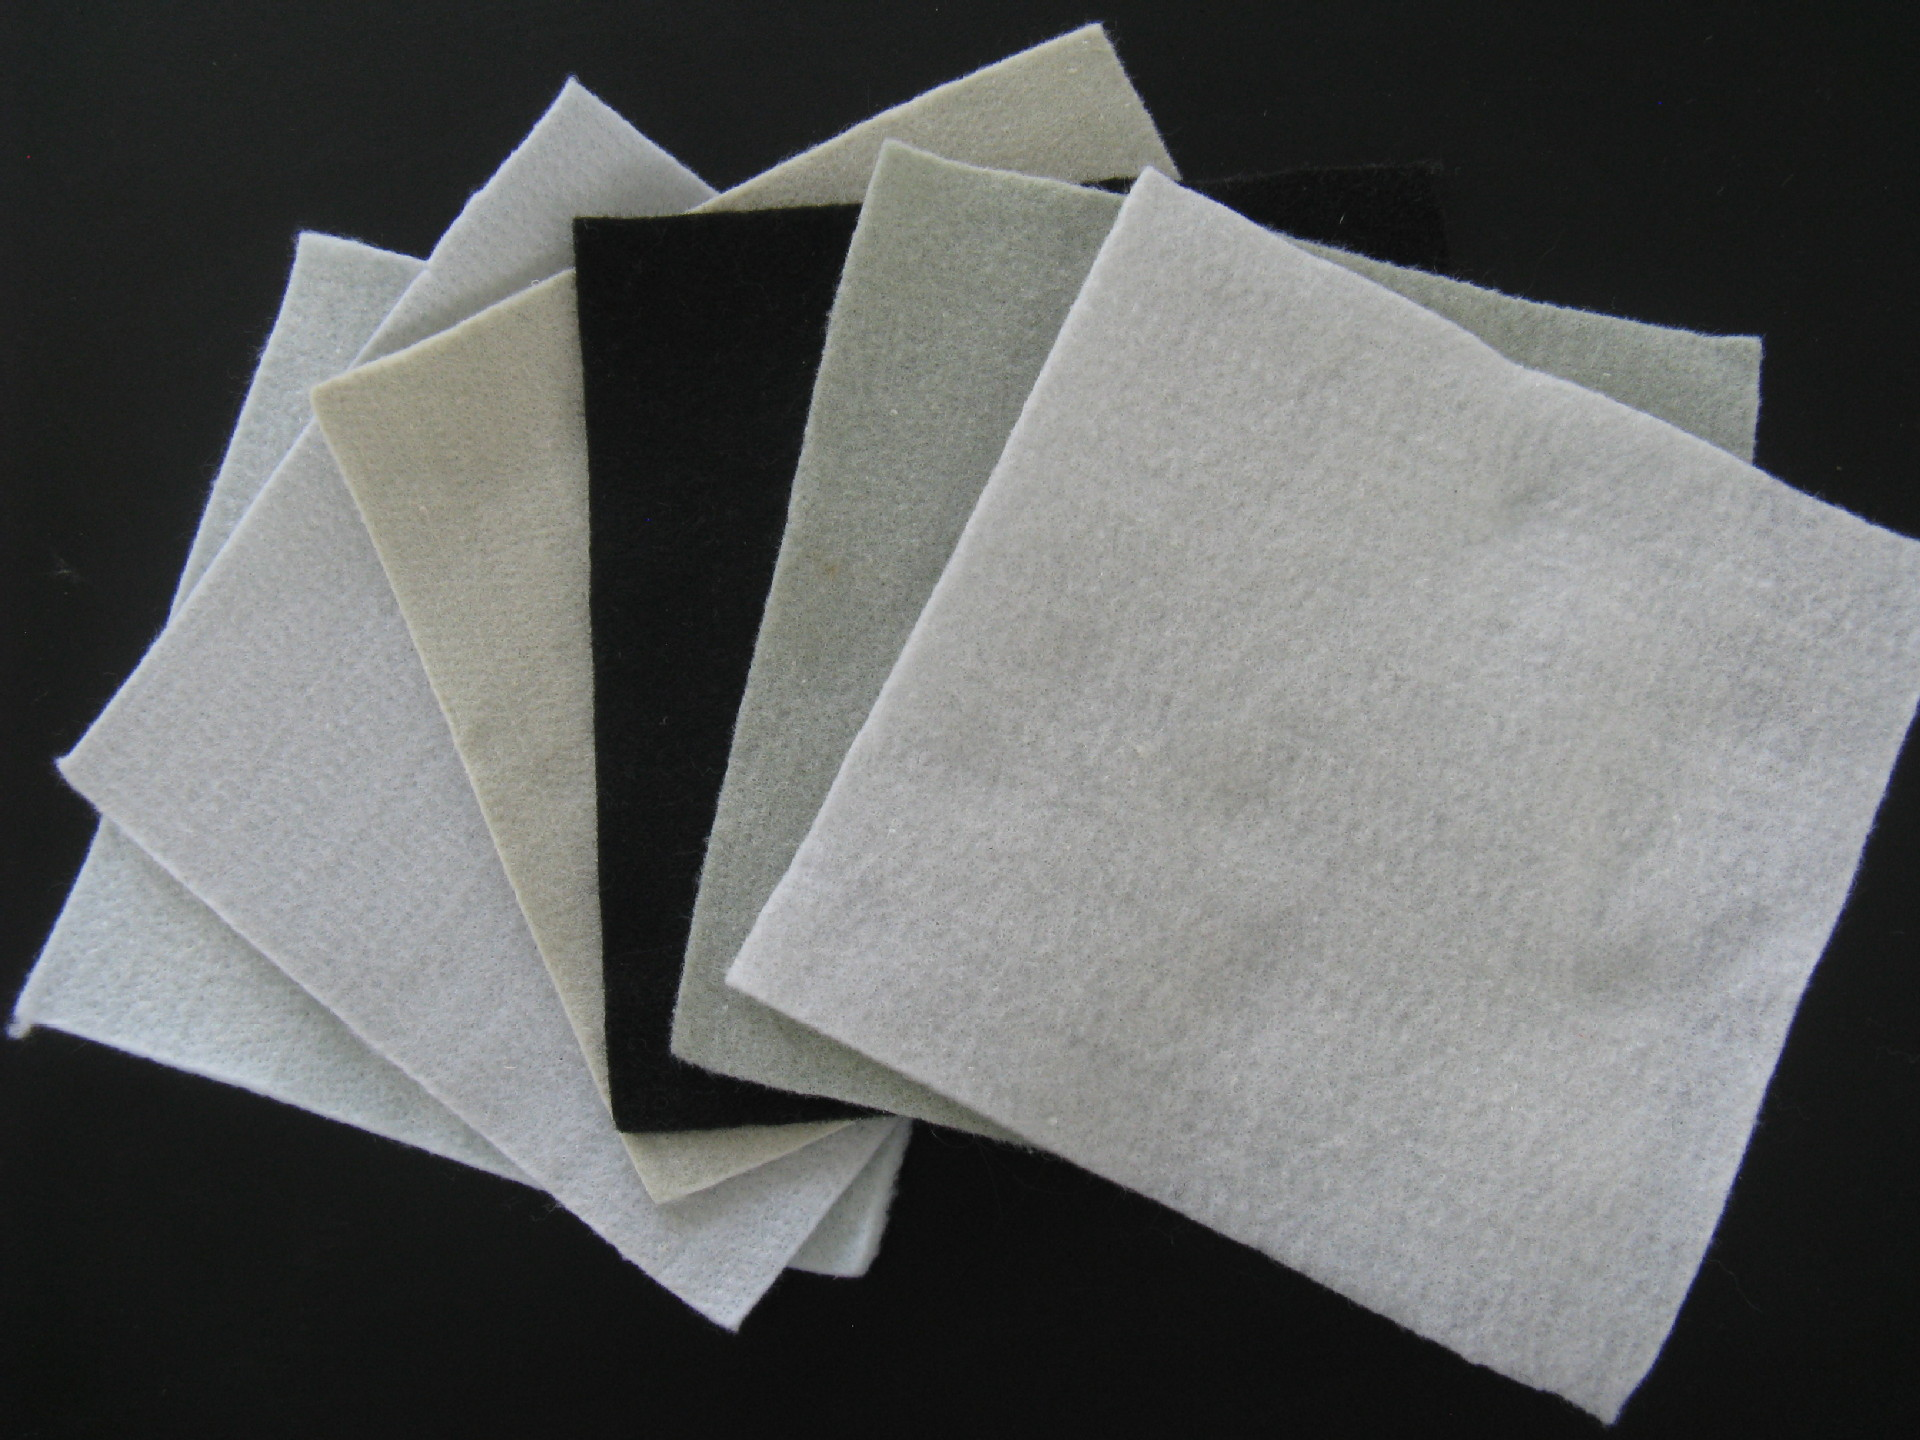 Needle-punched non-woven geotextile Manufacturers,Suppliers